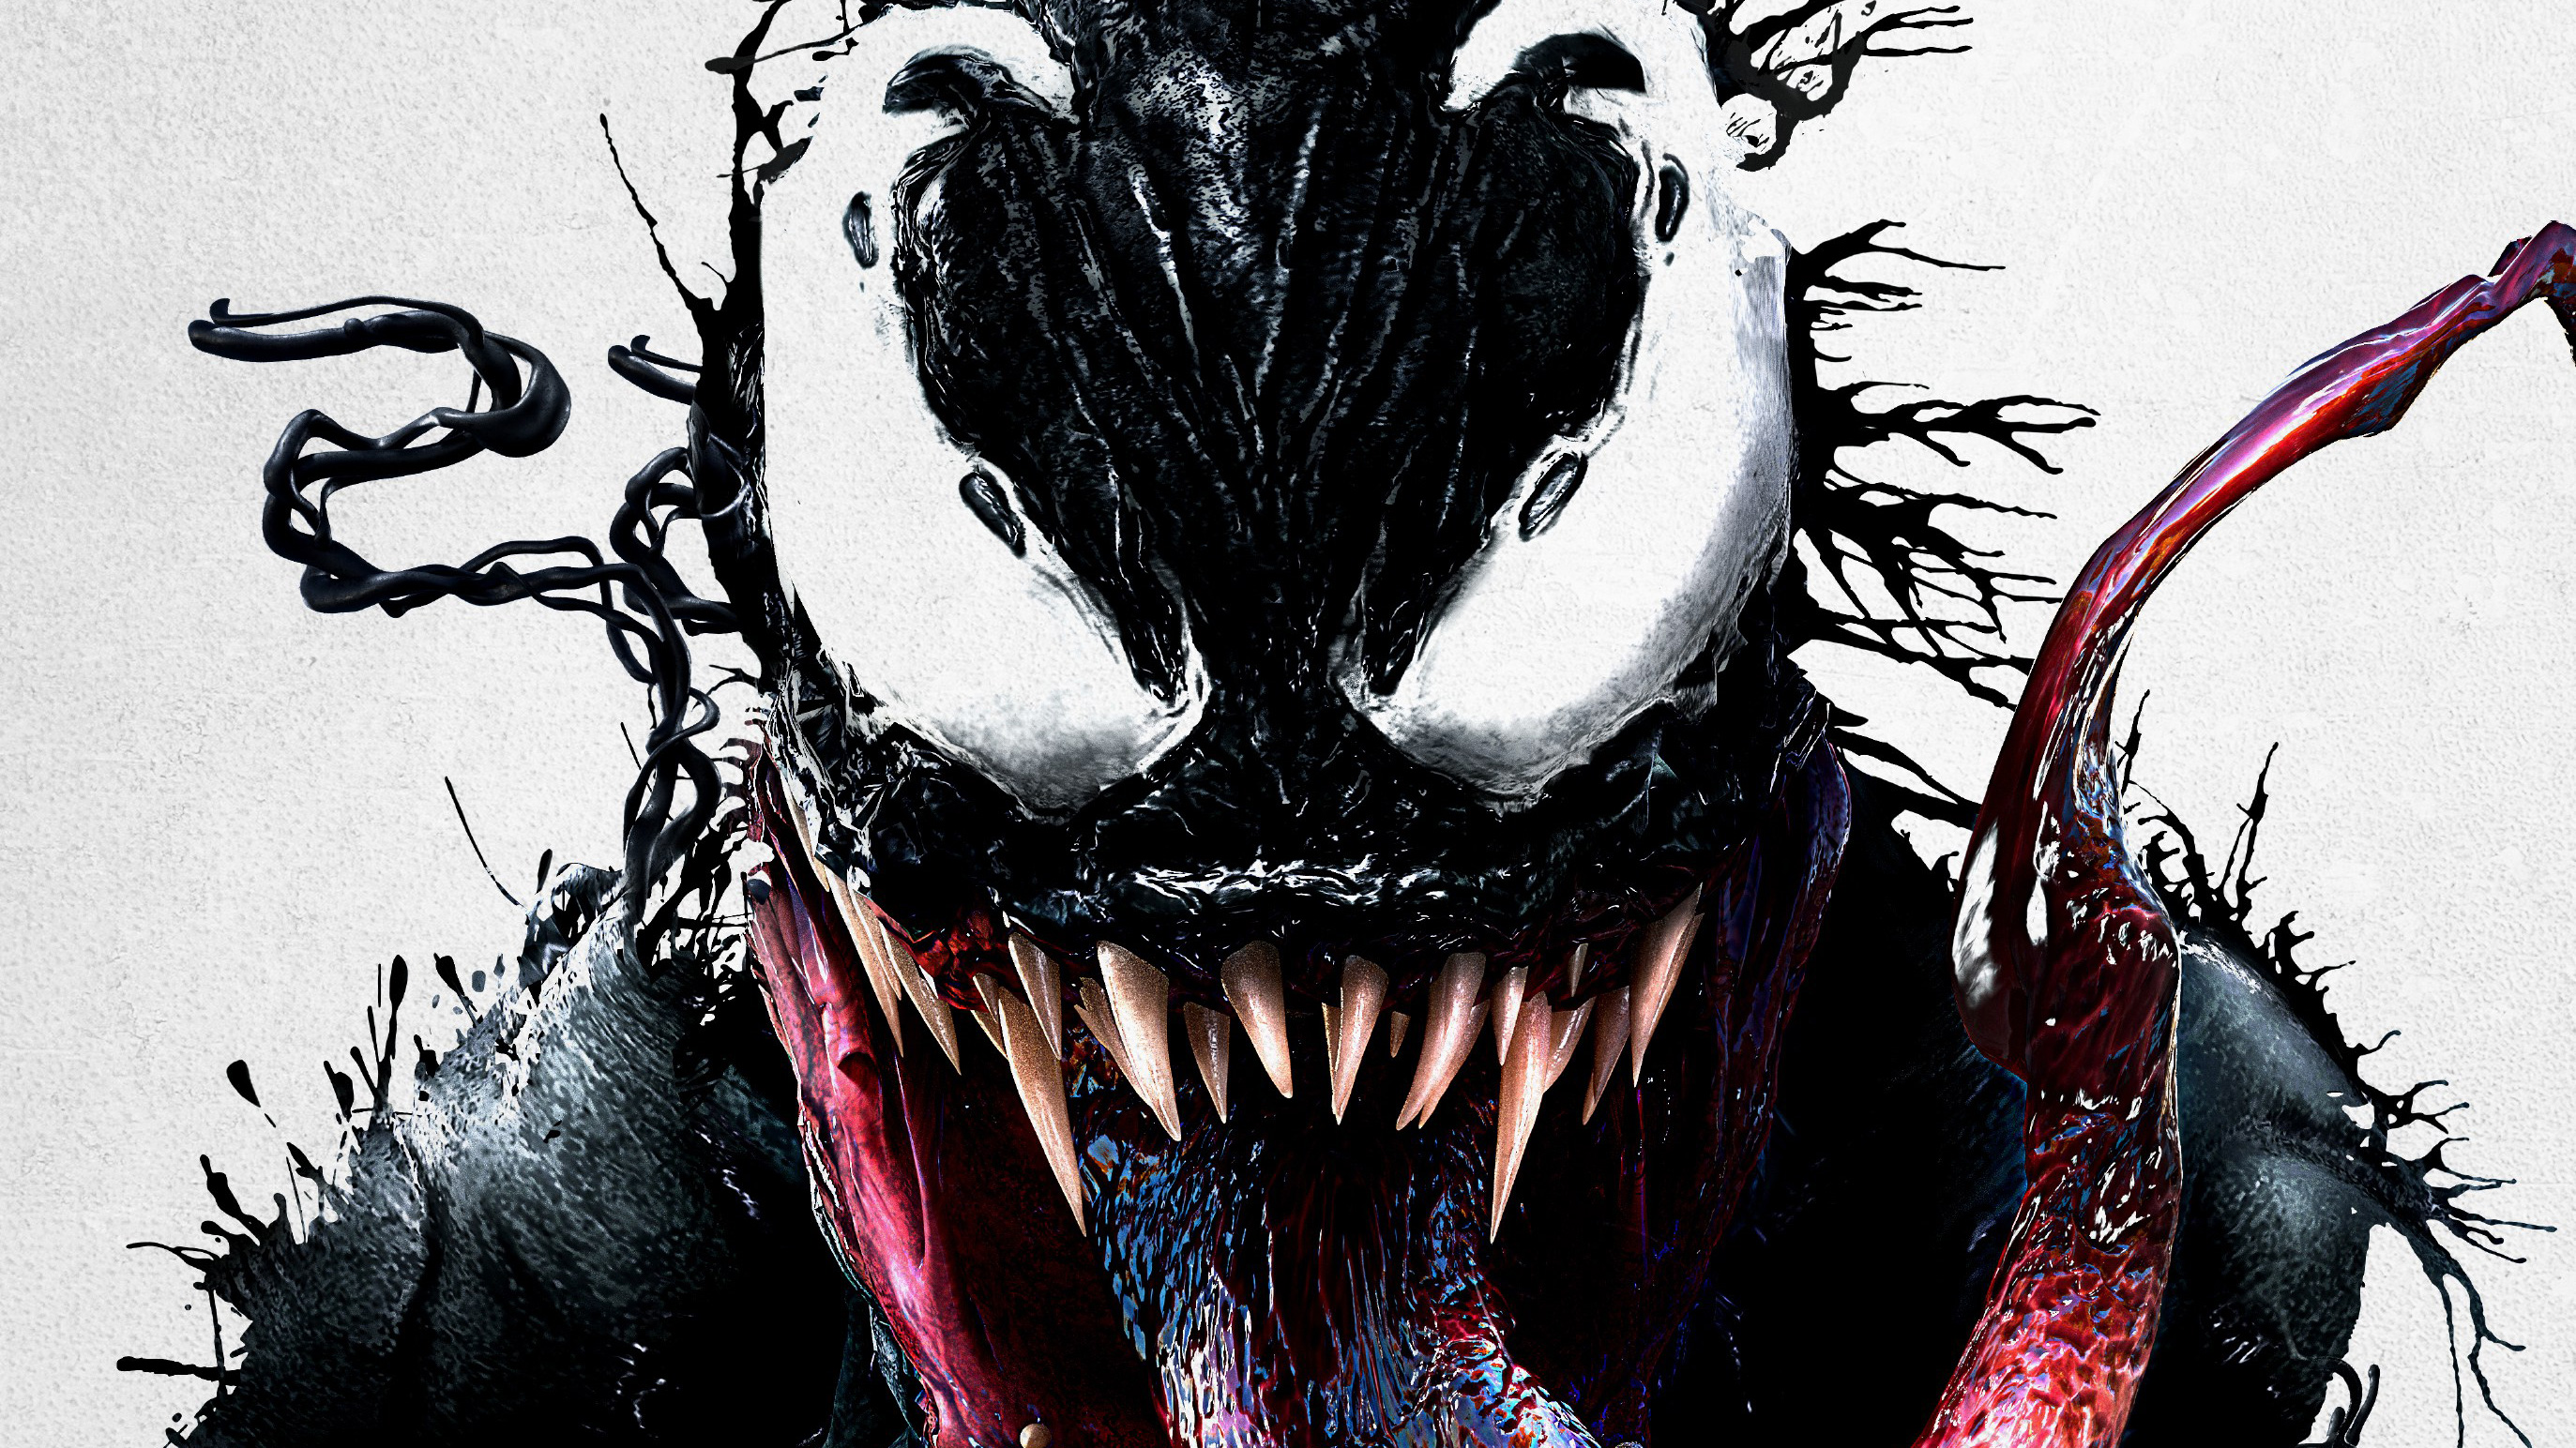 Venom Movie Imax Poster, HD Movies, 4k Wallpapers, Images